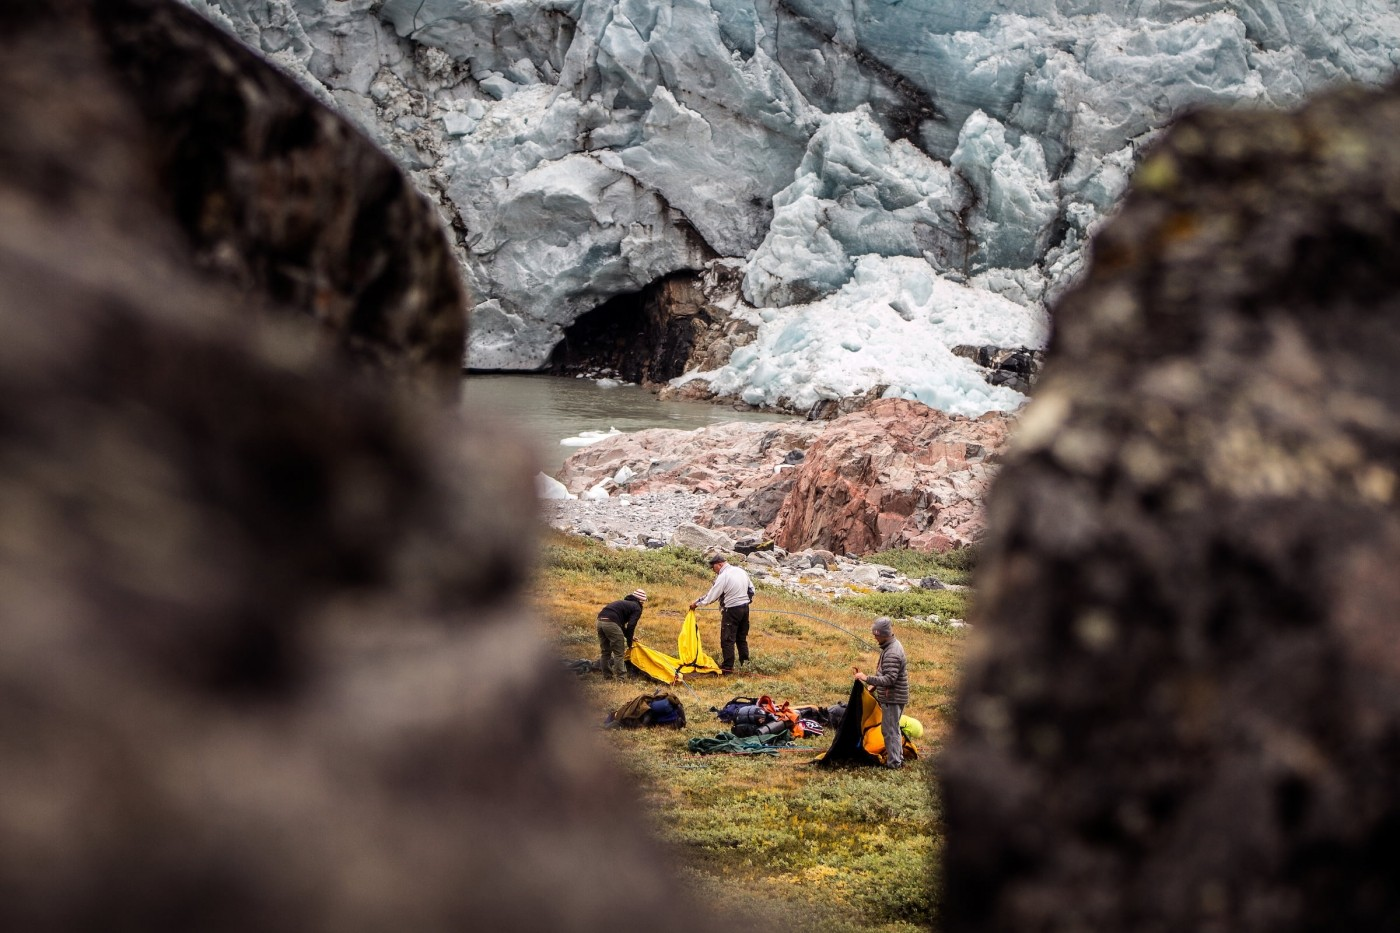 Setting up camp at Russell Glacier near Kangerlussuaq in Greenland. Photo by Mads Pihl - Visit Greenland